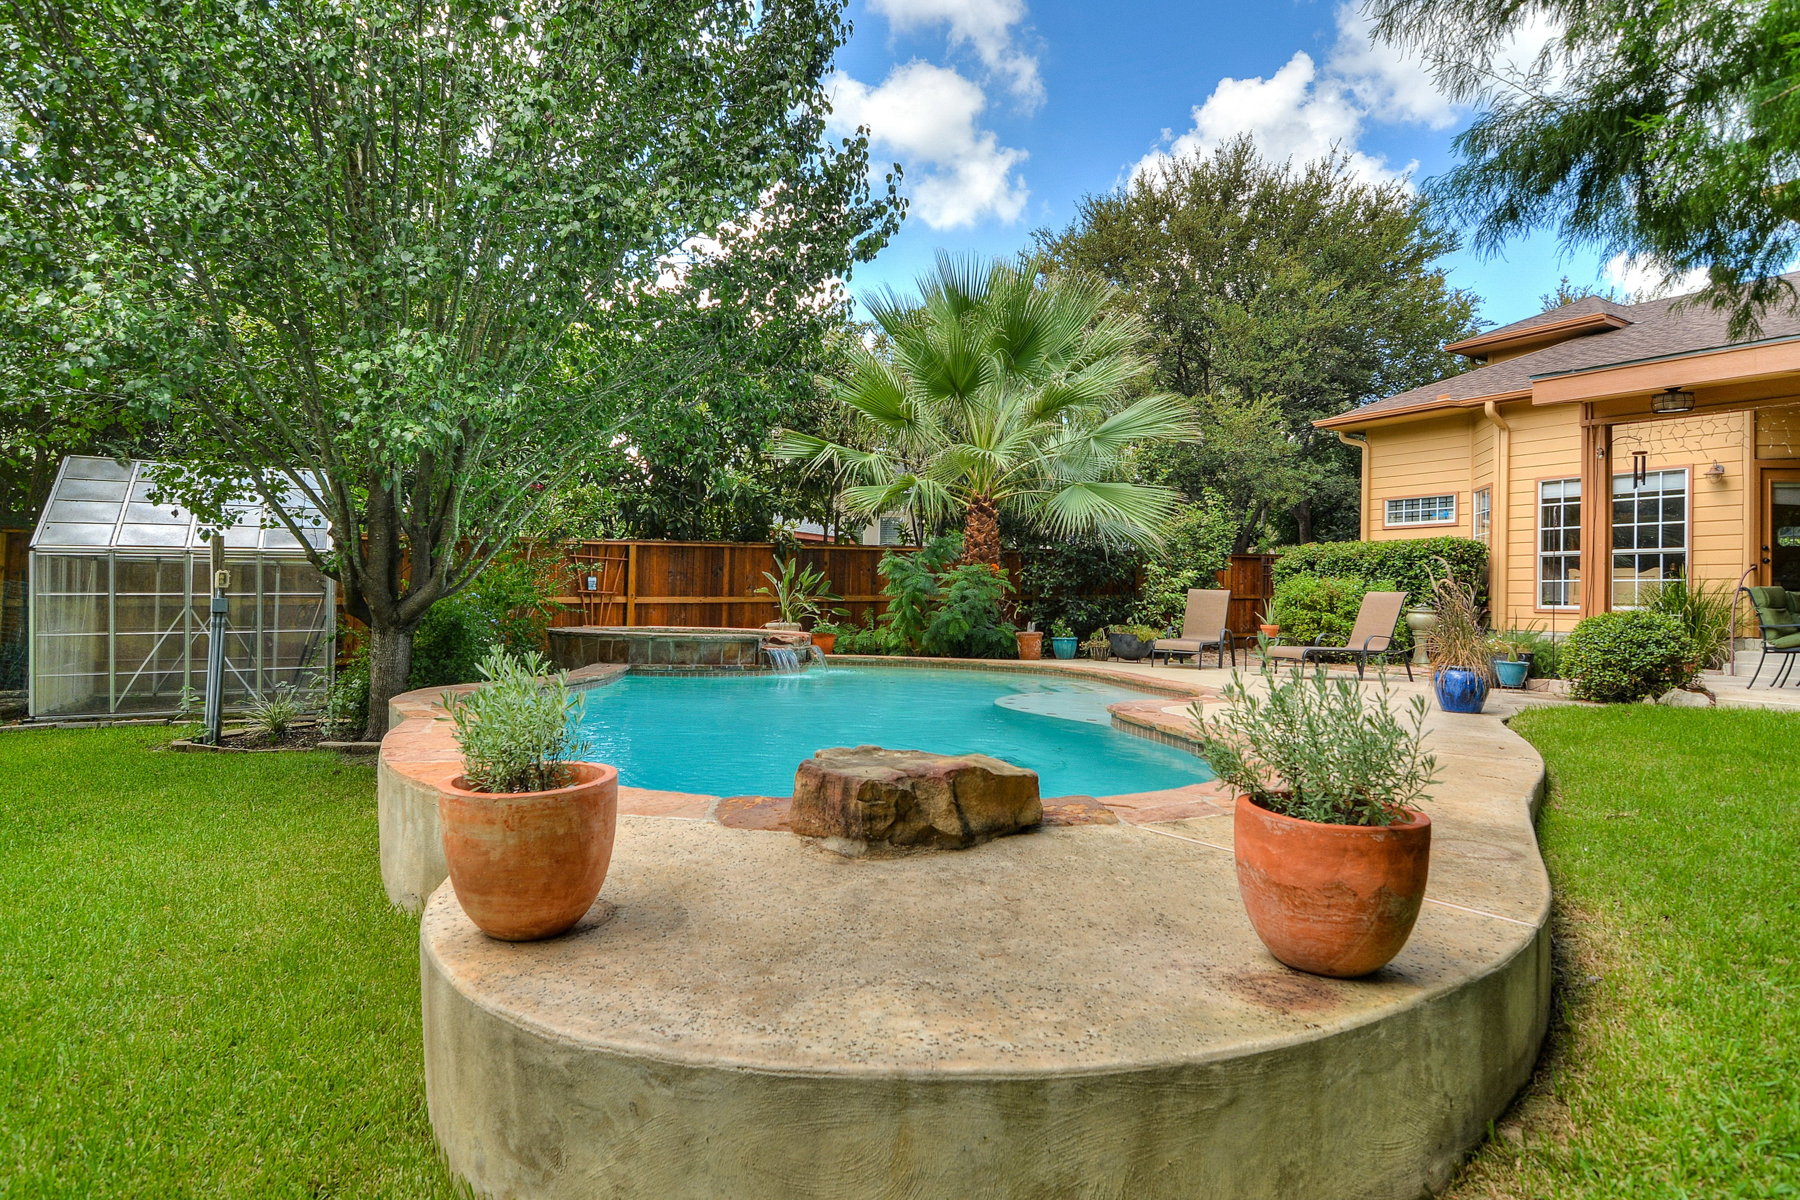 Additional photo for property listing at Private Oasis in Bluffview Greens 14 Greens Whisper San Antonio, Texas 78216 Estados Unidos